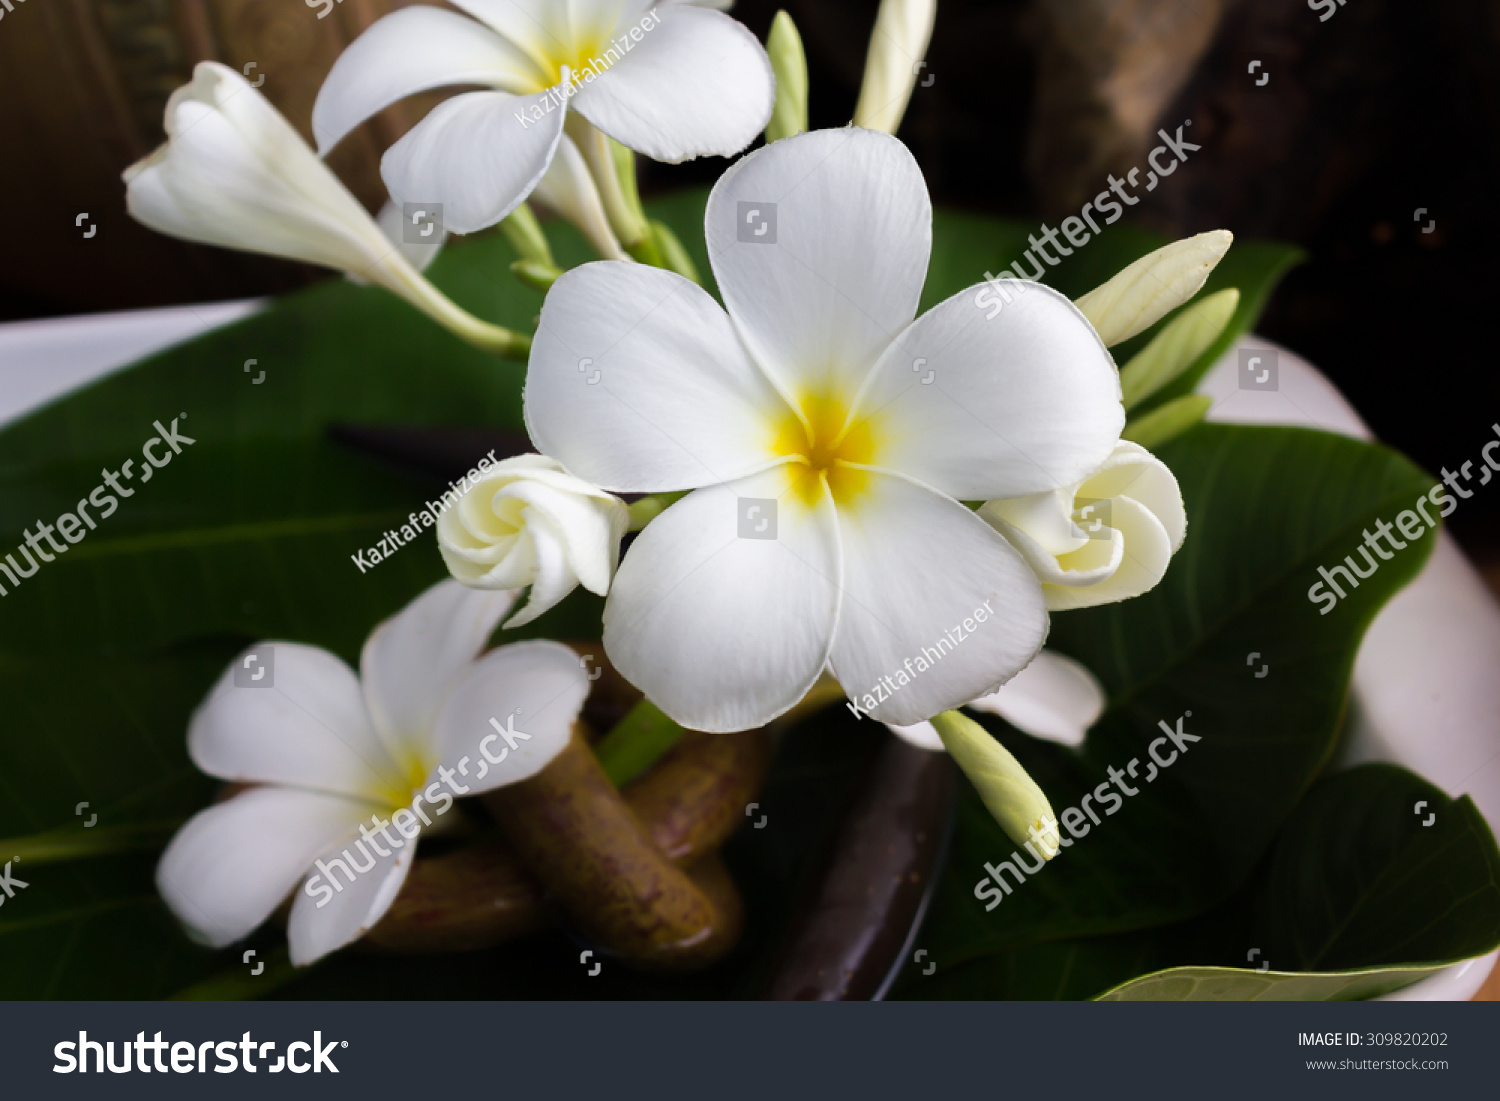 Blossom And Bud White Flower Frangipani Or Plumeria In Vintage And